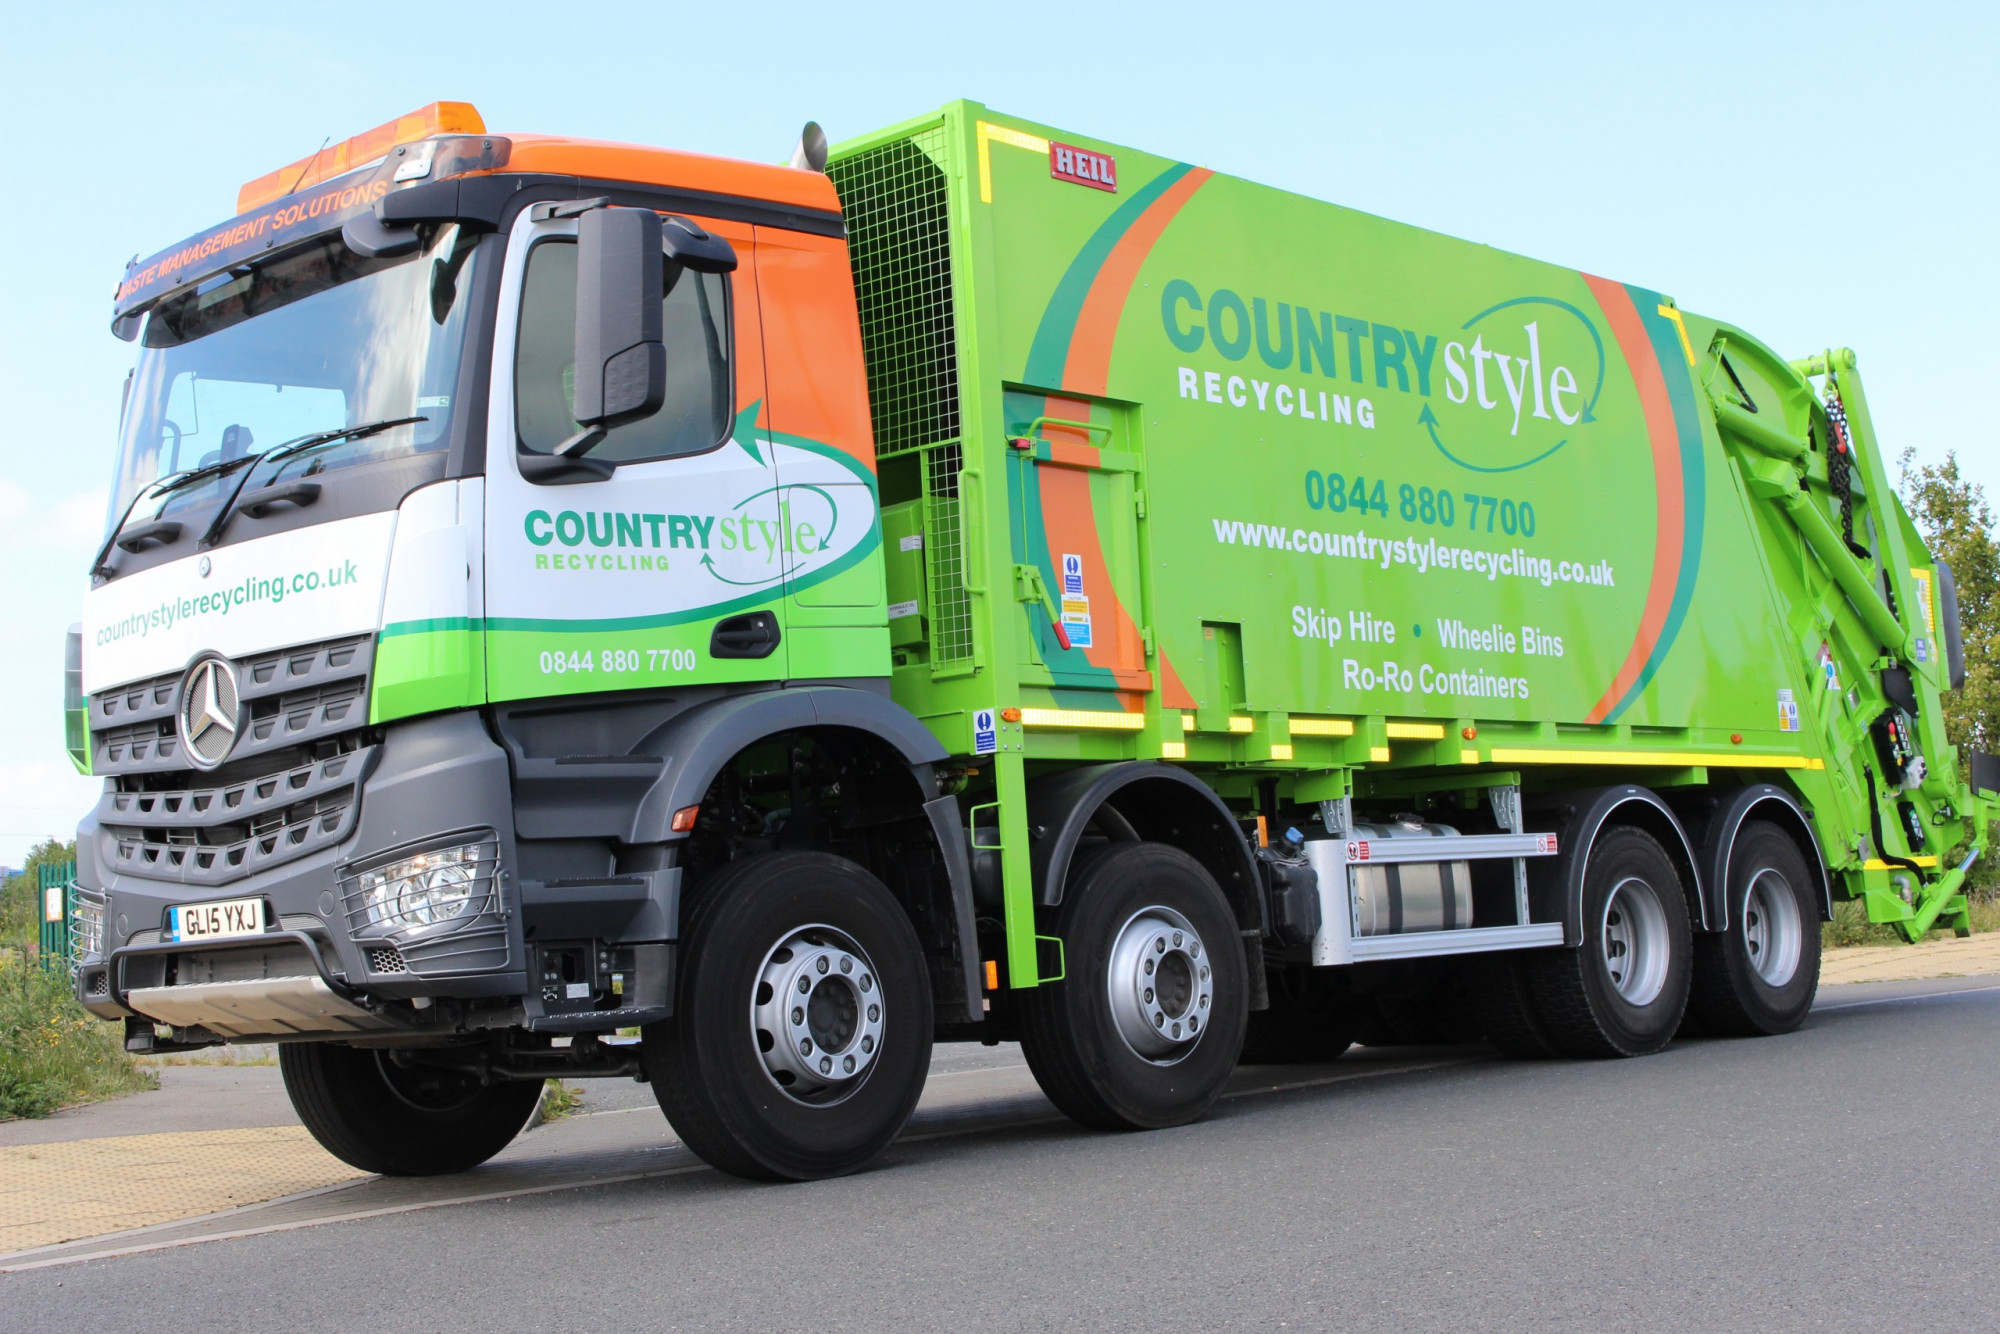 That collects waste you can be assured that we will collect your waste